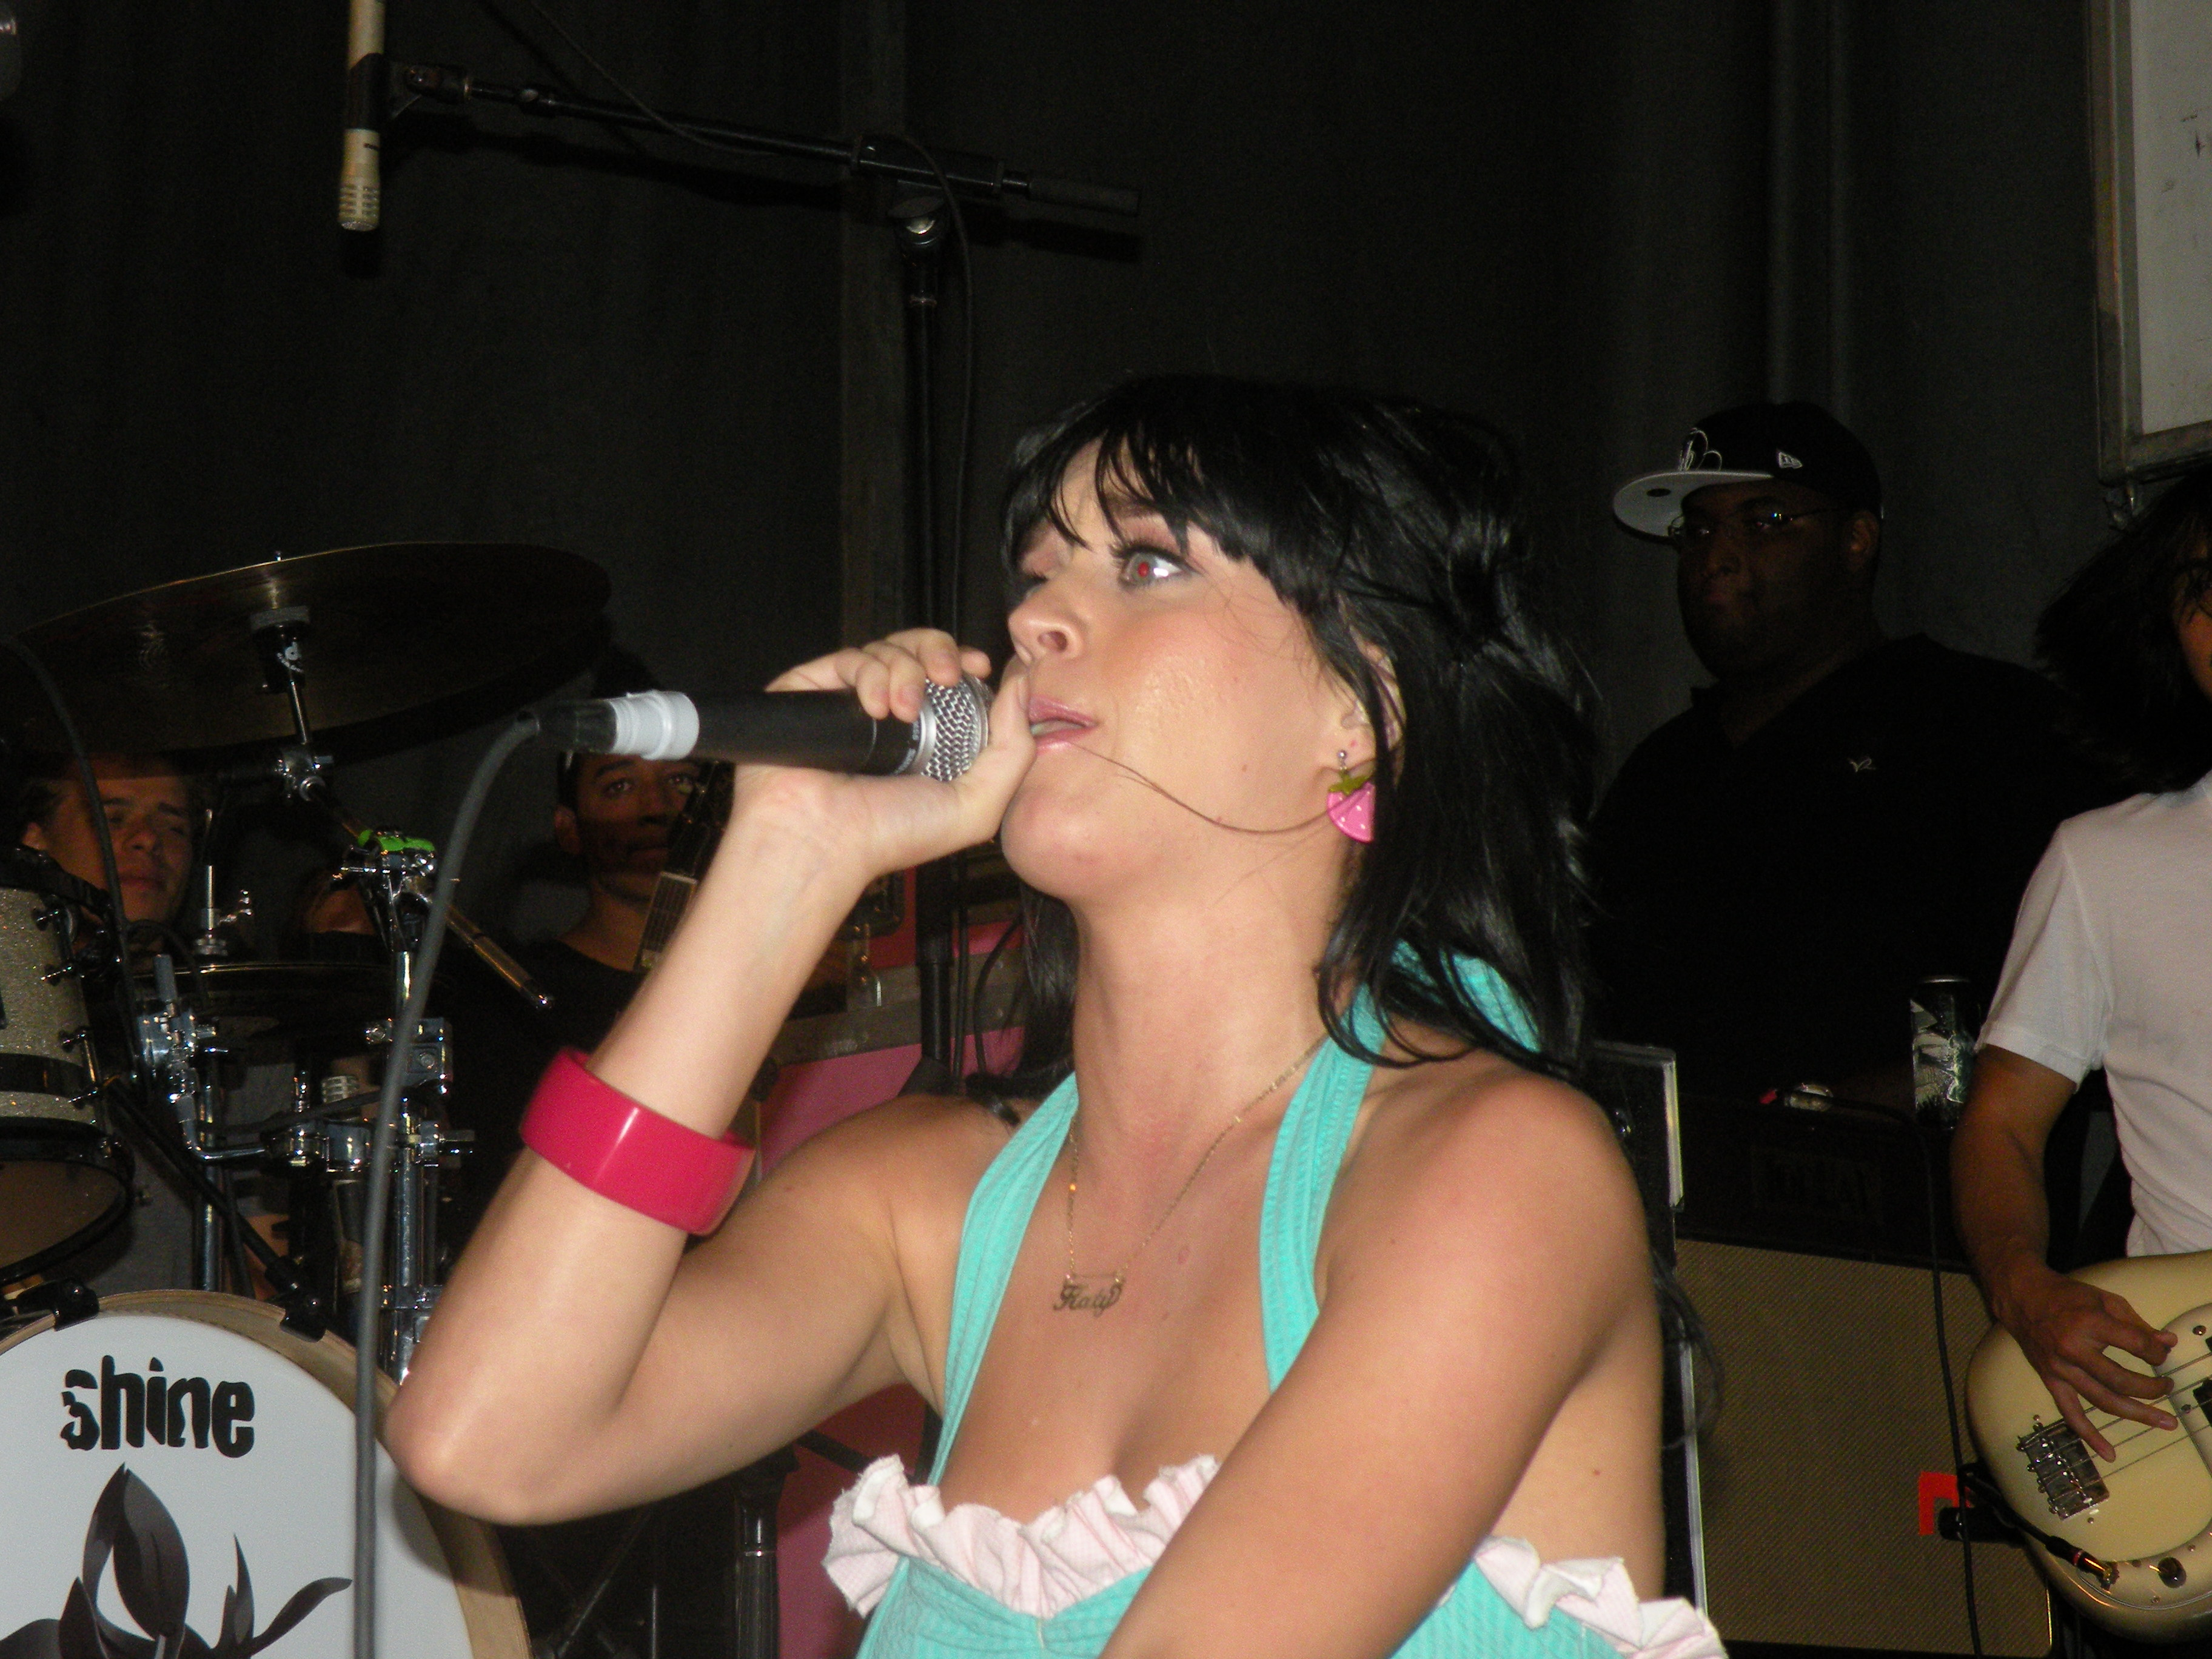 Description katy perry with microphone by medigirol